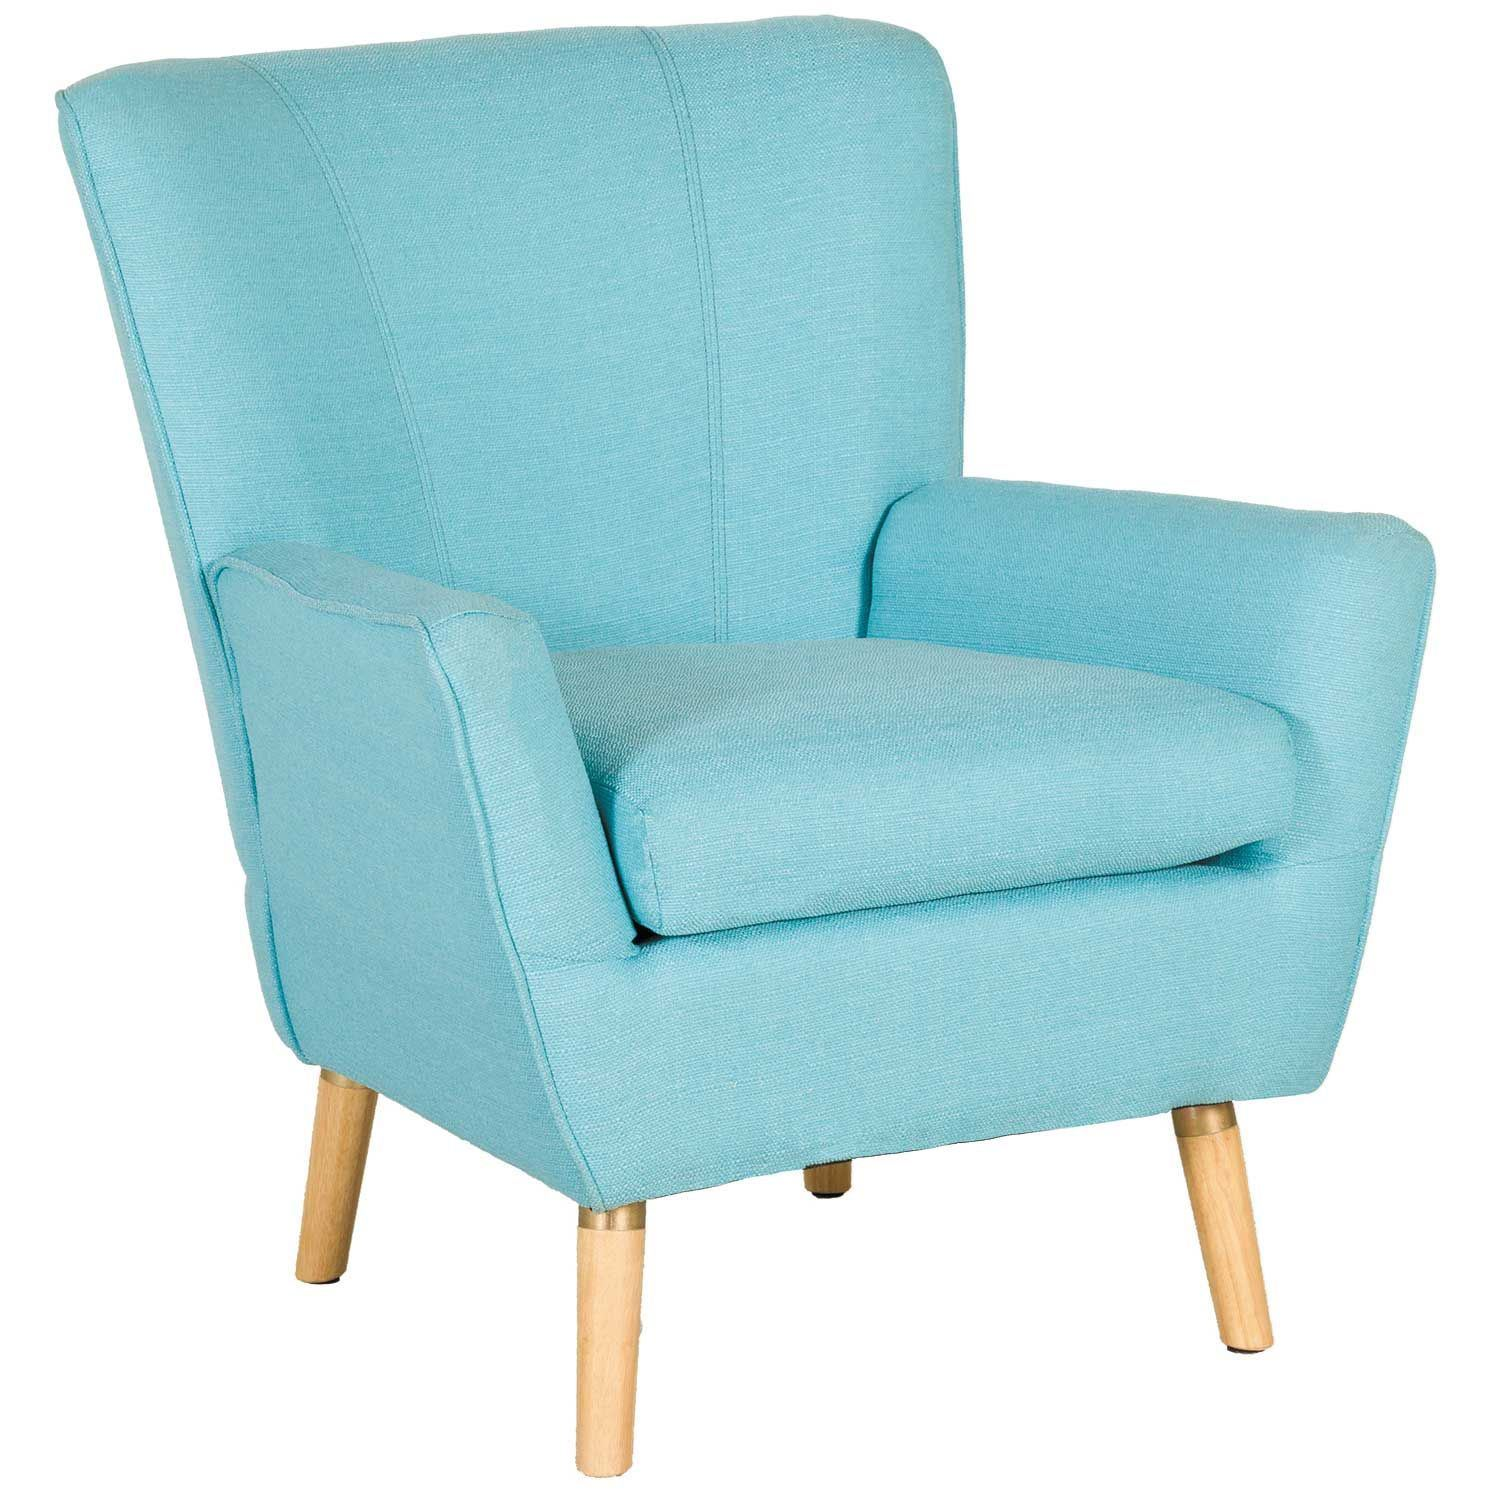 Accent Chair Blue Mara Blue Accent Chair 1g 6020 Modern And Retro Accent